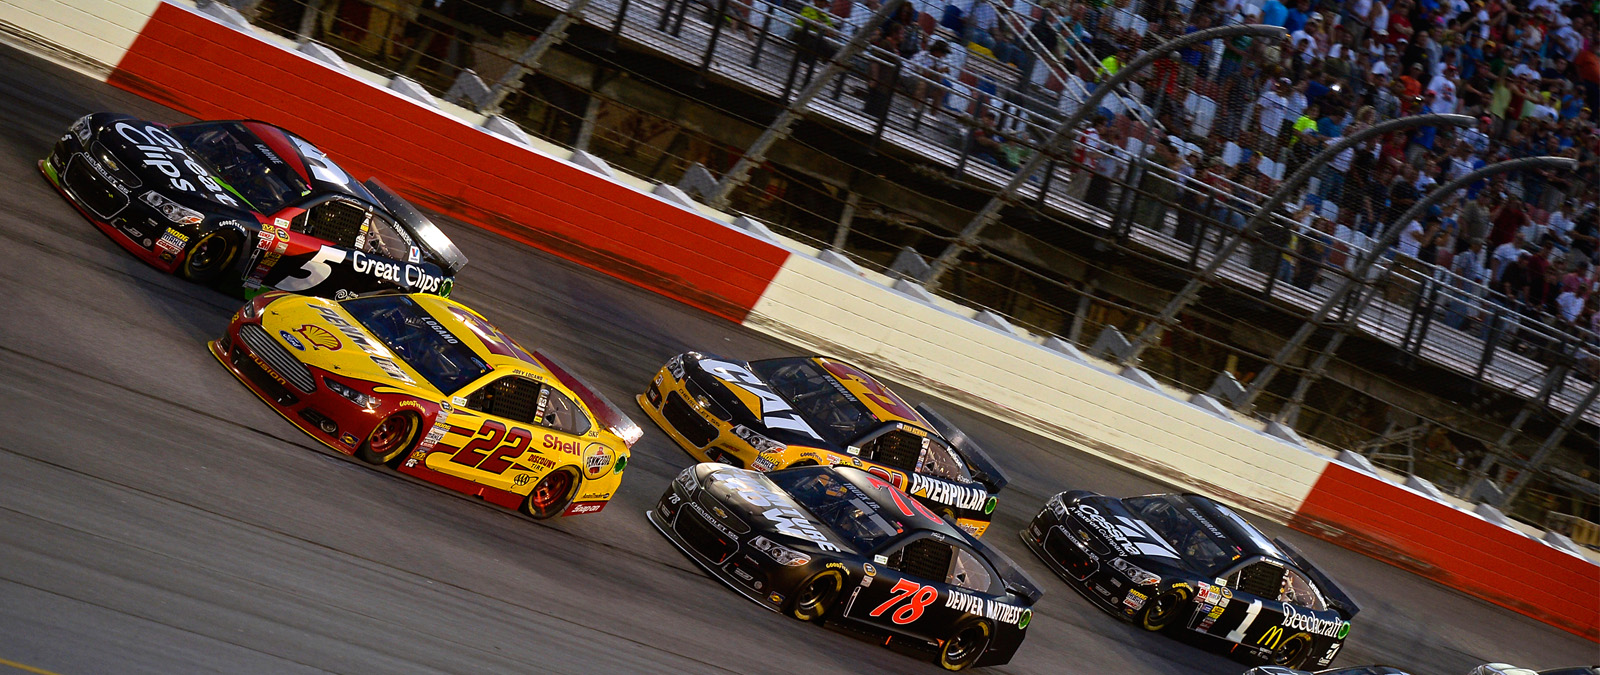 Darlington Race 2014